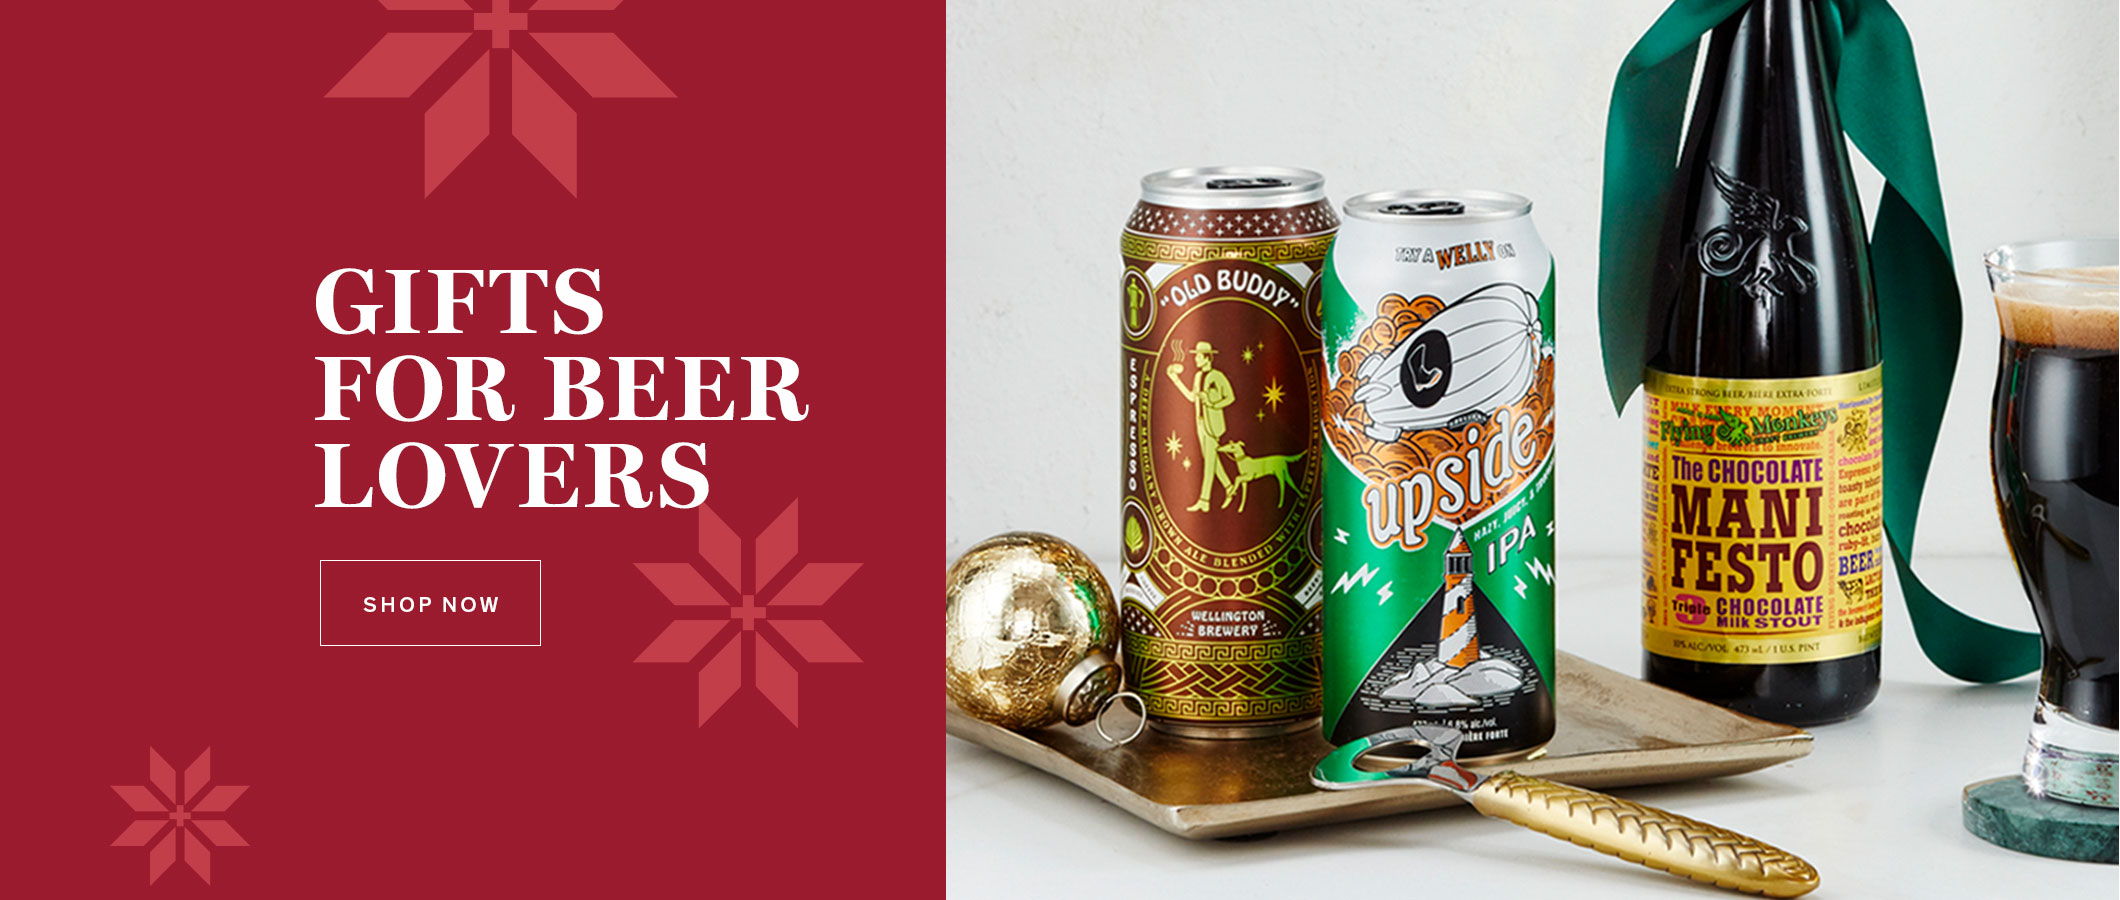 Gifts for Beer Lovers.  SHOP NOW